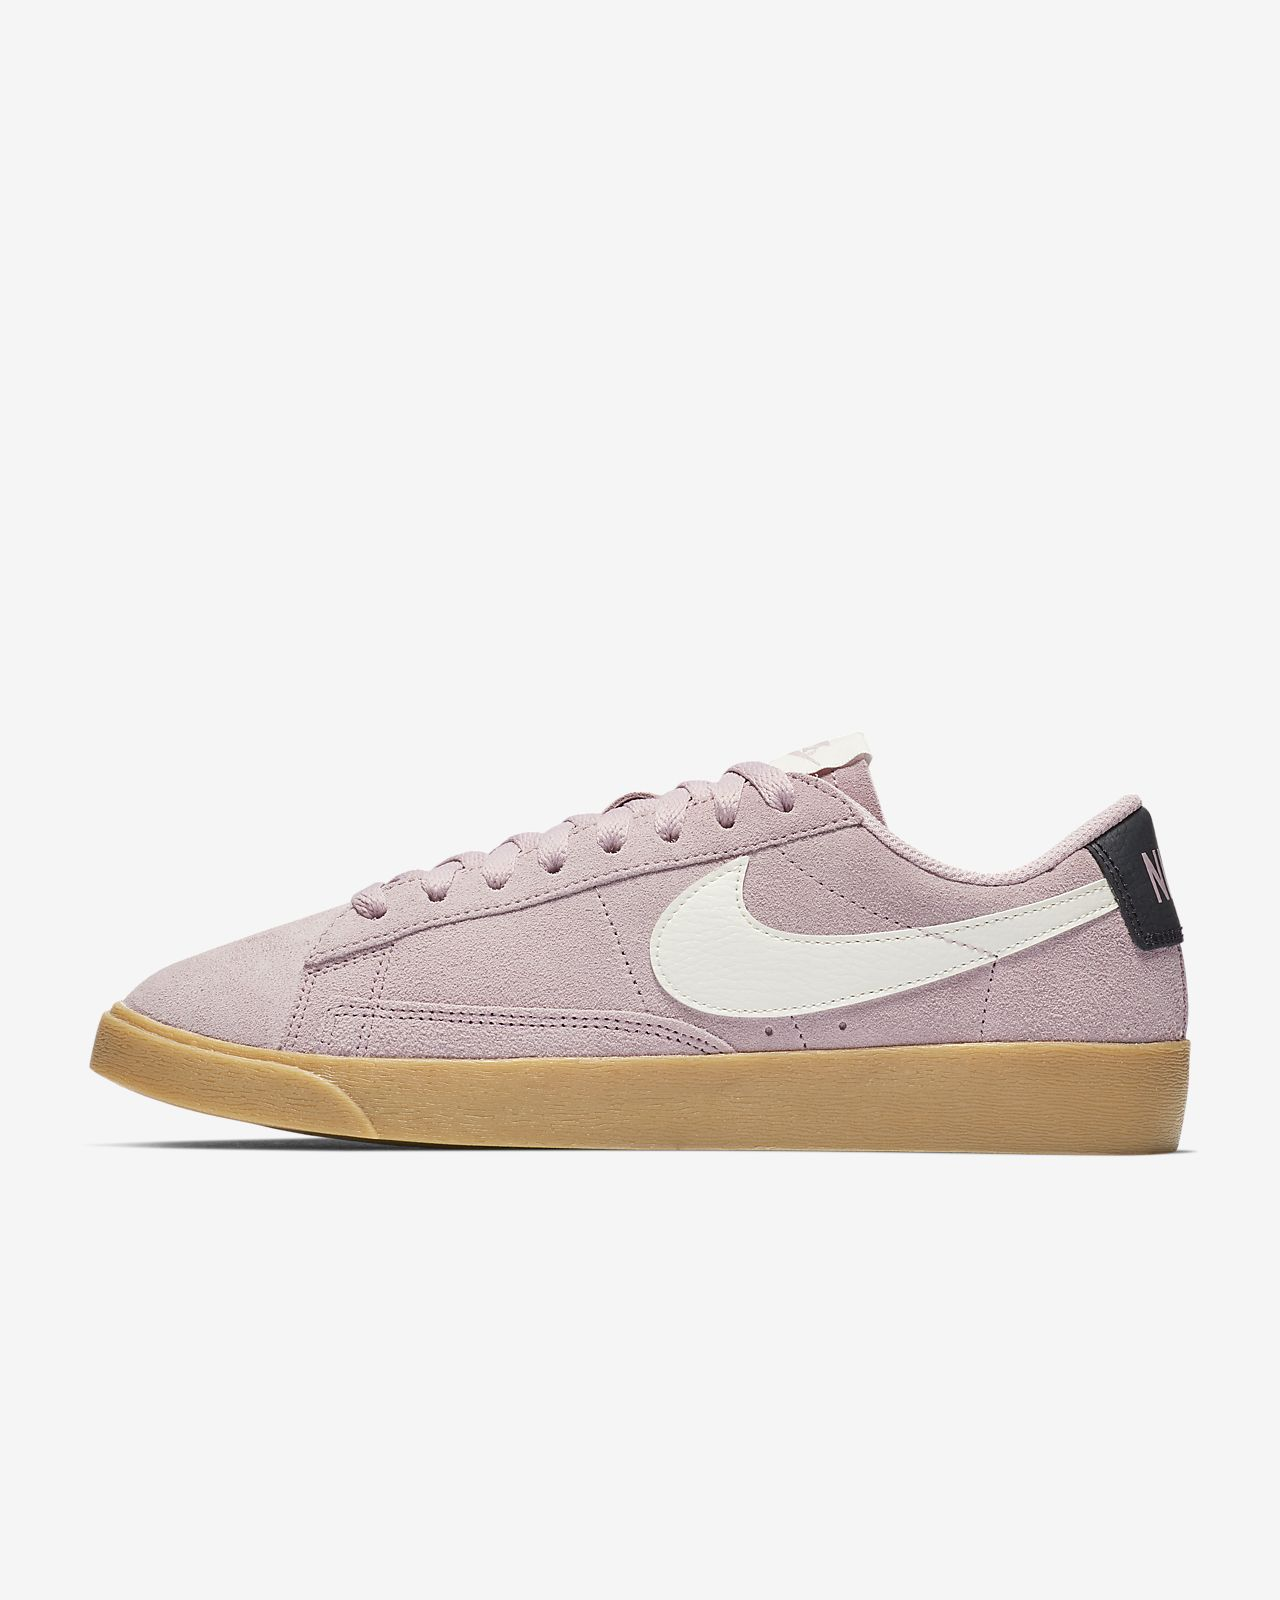 sneakers for cheap 5d9eb dd92f Suede Blazer Nike Chaussure Pour Be Low Femme wvTntg0q